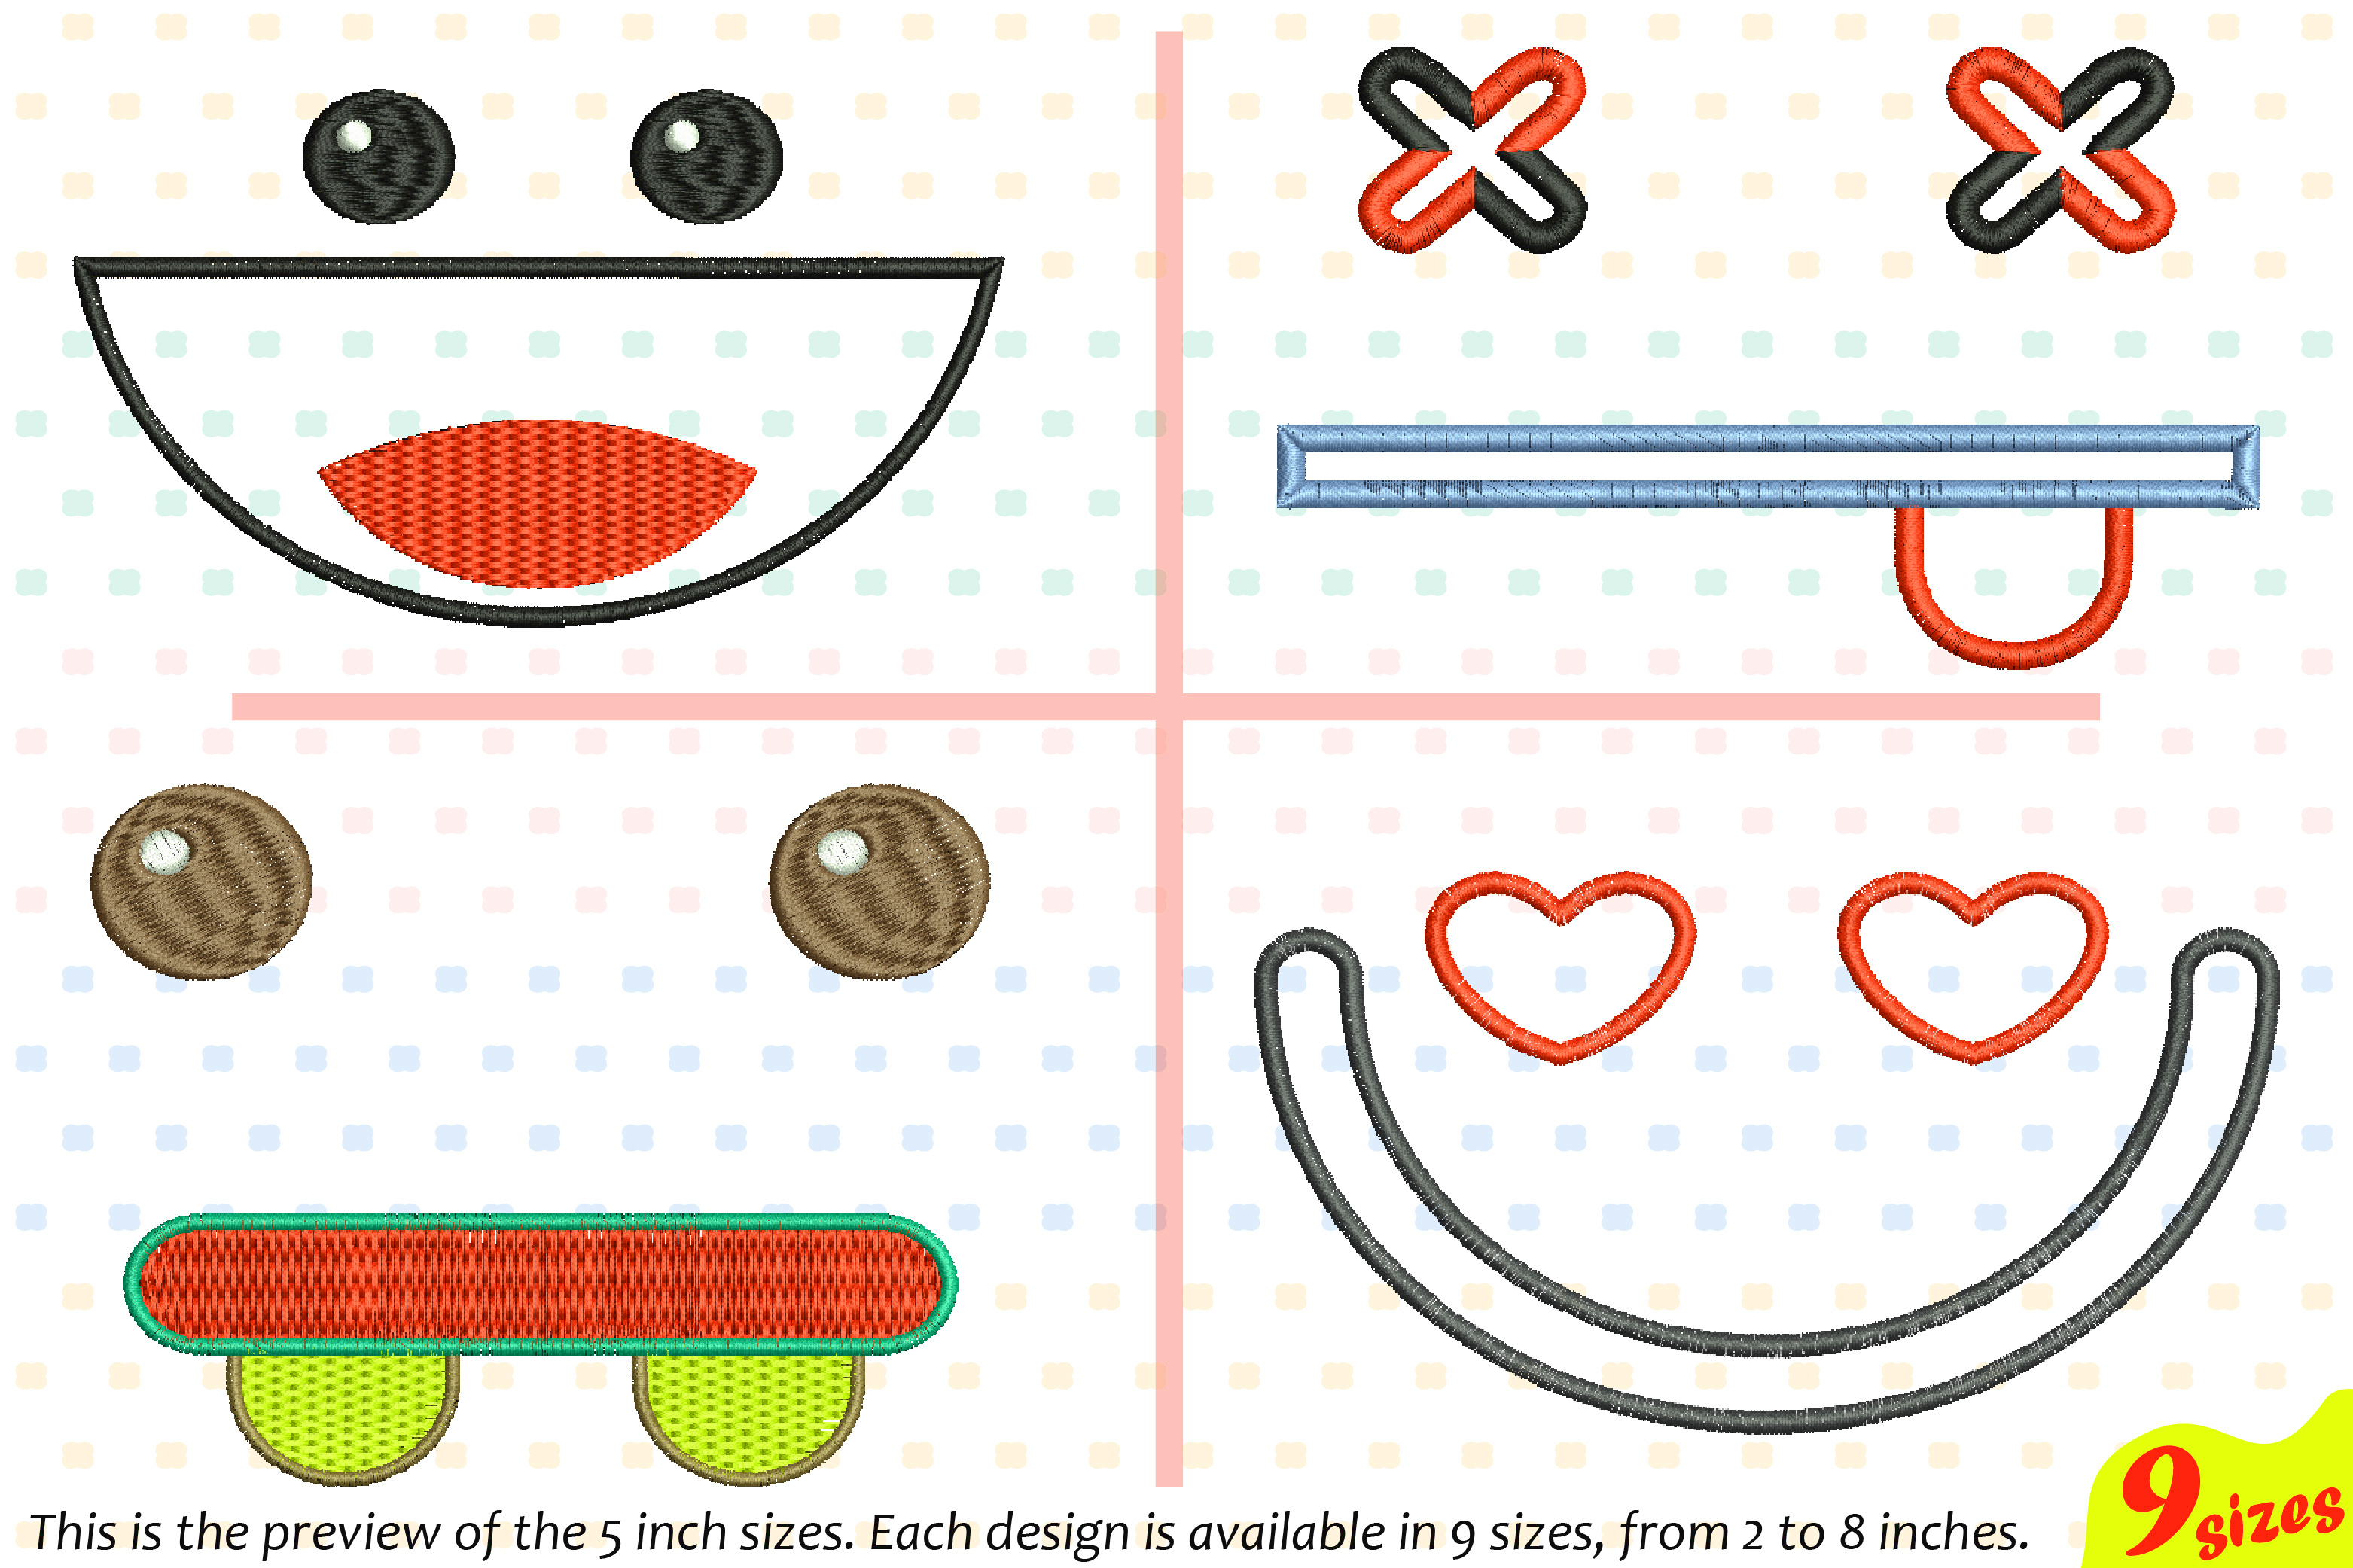 Cute Emoji Embroidery Design Machine Instant Download Commercial Use digital file icon symbol sign emoticons smile Kawaii Expression 185b example image 1